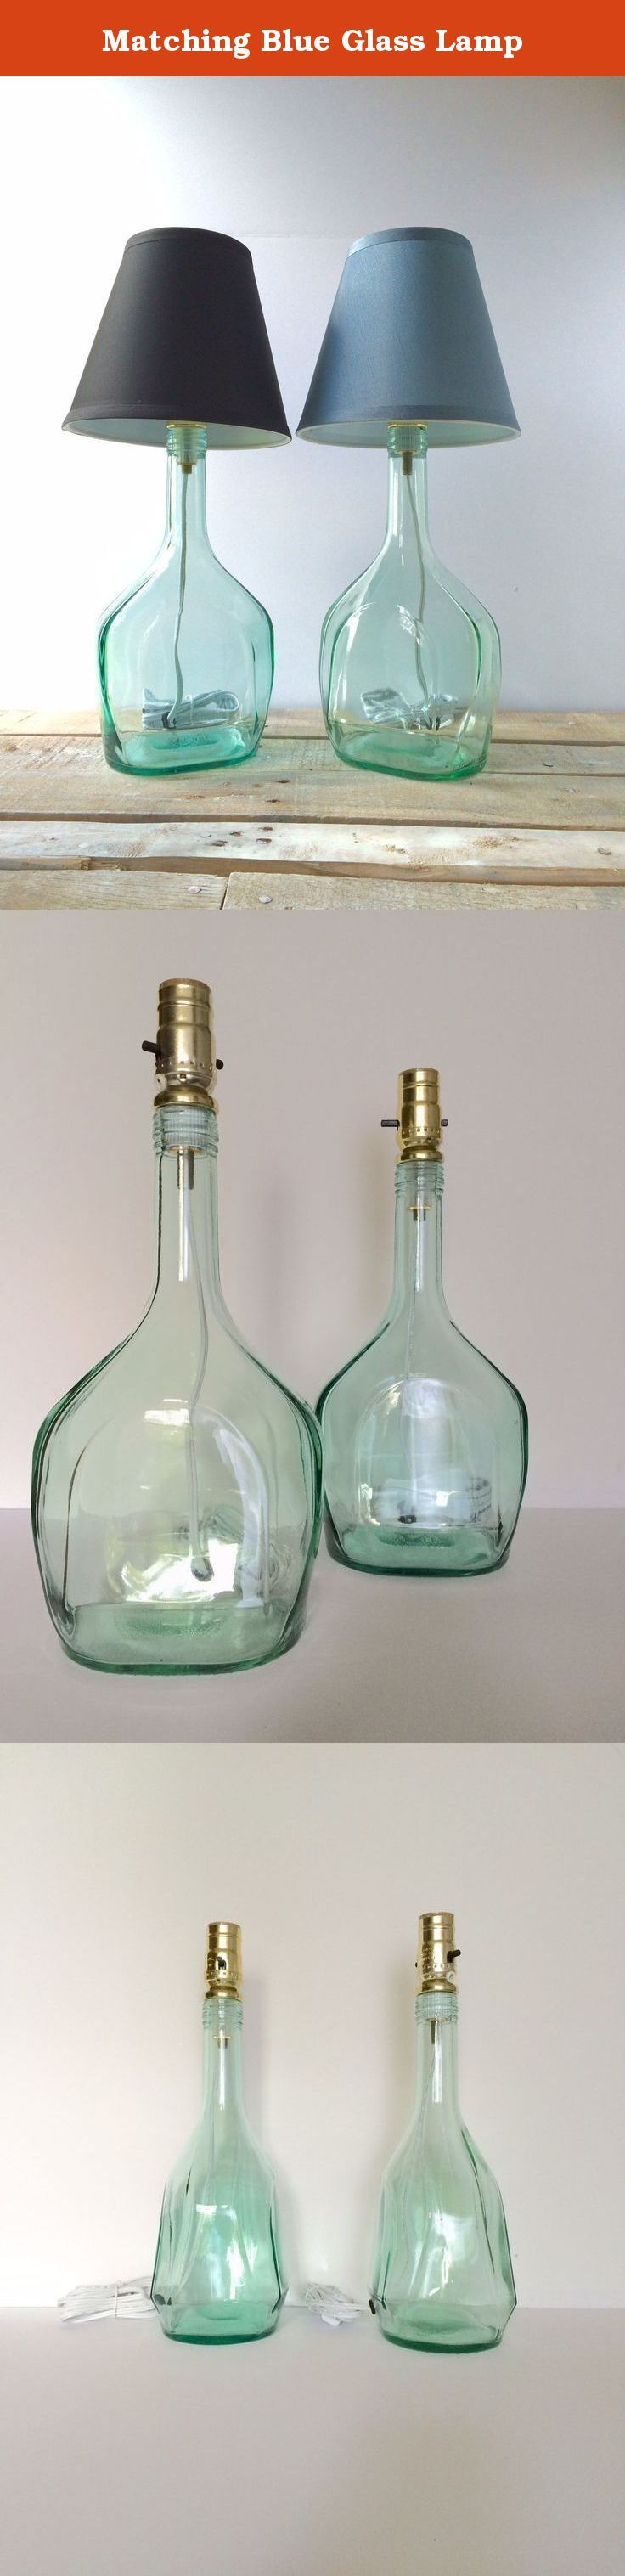 """Matching Blue Glass Lamp. These are a 1.75L blue glass bottle transformed into lamp. The bottle has a unique shape. The height approx 14 1/2"""" and the width at the base 4 1/2"""". The lamp has a max 250W, 7ft. 18-Gauge Cord, Push-through socket. You provide bulb. Thank you for looking! Have fun in life."""